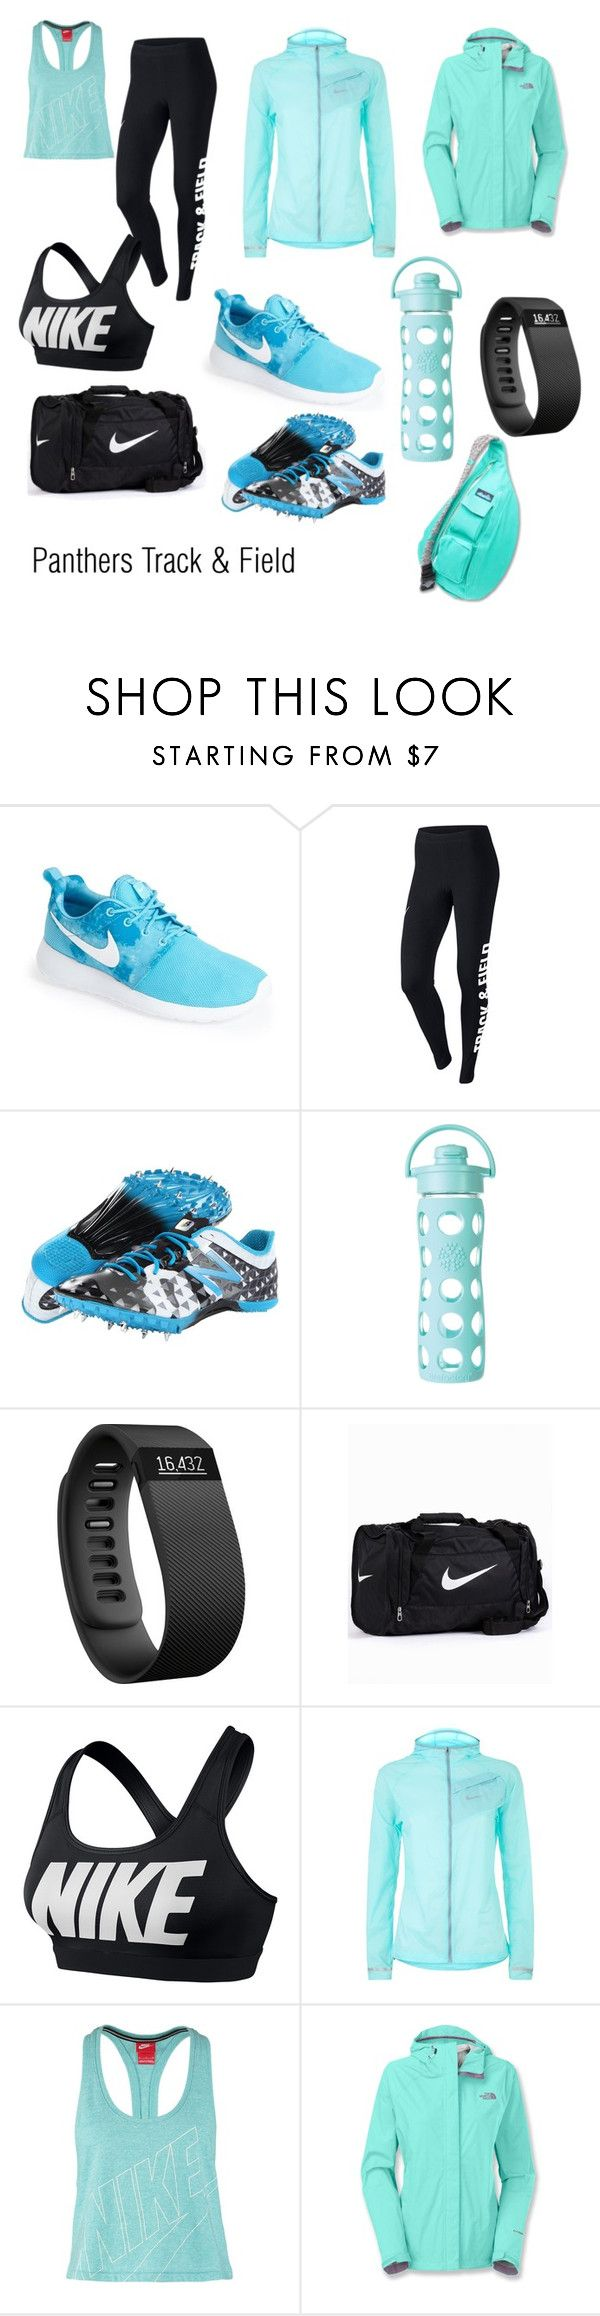 """Winter Track and Field"" by berkeleys12 ❤ liked on Polyvore featuring NIKE, New Balance, Lifefactory, Fitbit, The North Face, Kavu, run, practice, daily and 2015"